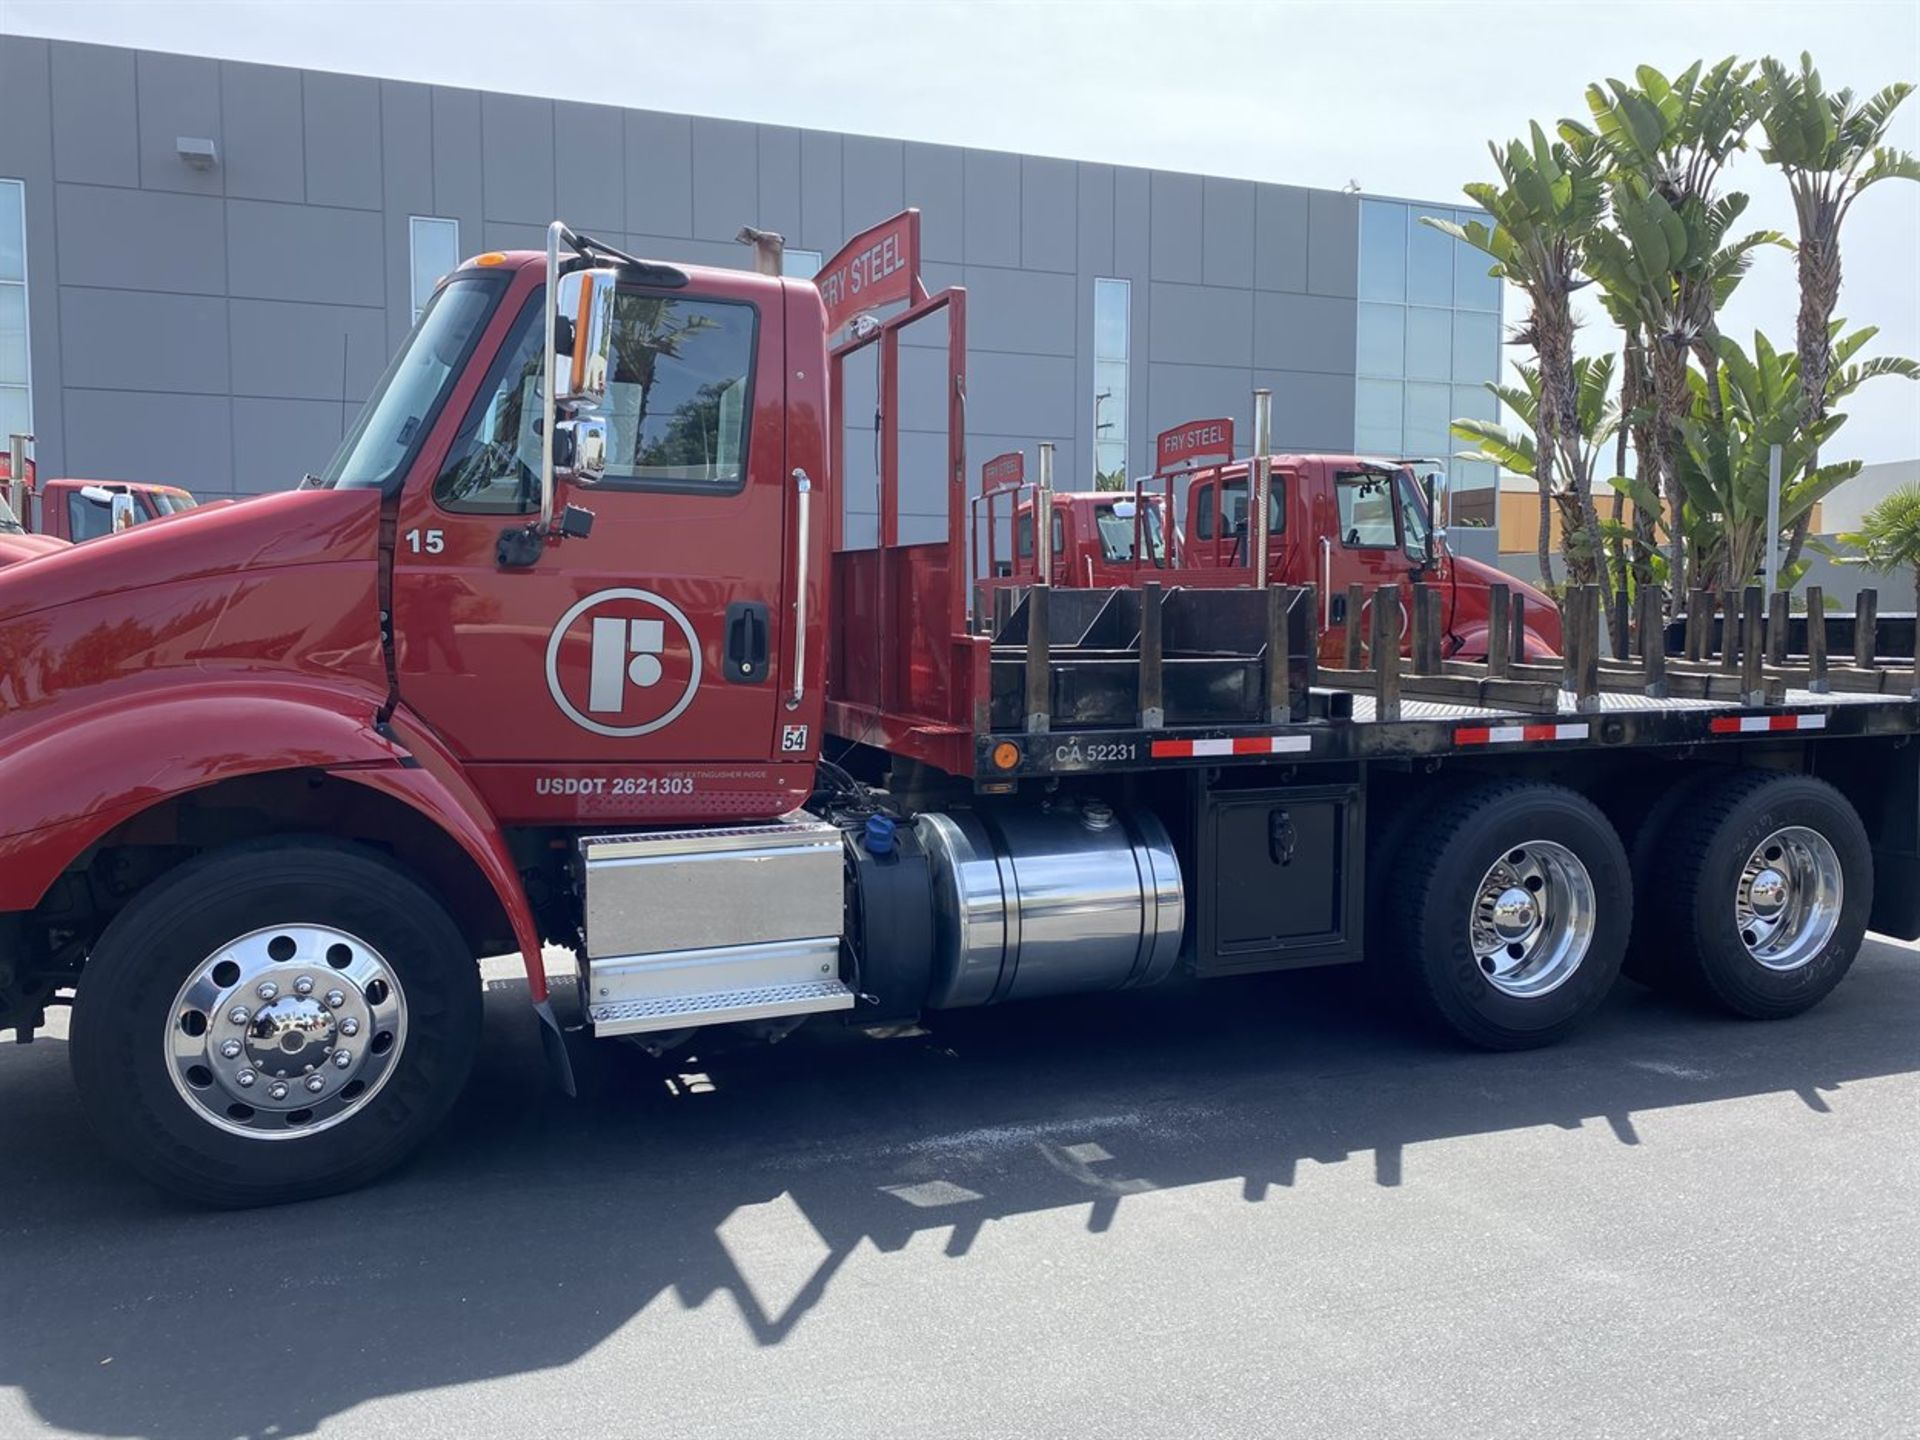 2016 INTERNATIONAL 18' Stake Bed Truck, VIN 1HTHXSNR4GH132503, 129,562 Miles at time of inspection - Image 3 of 21